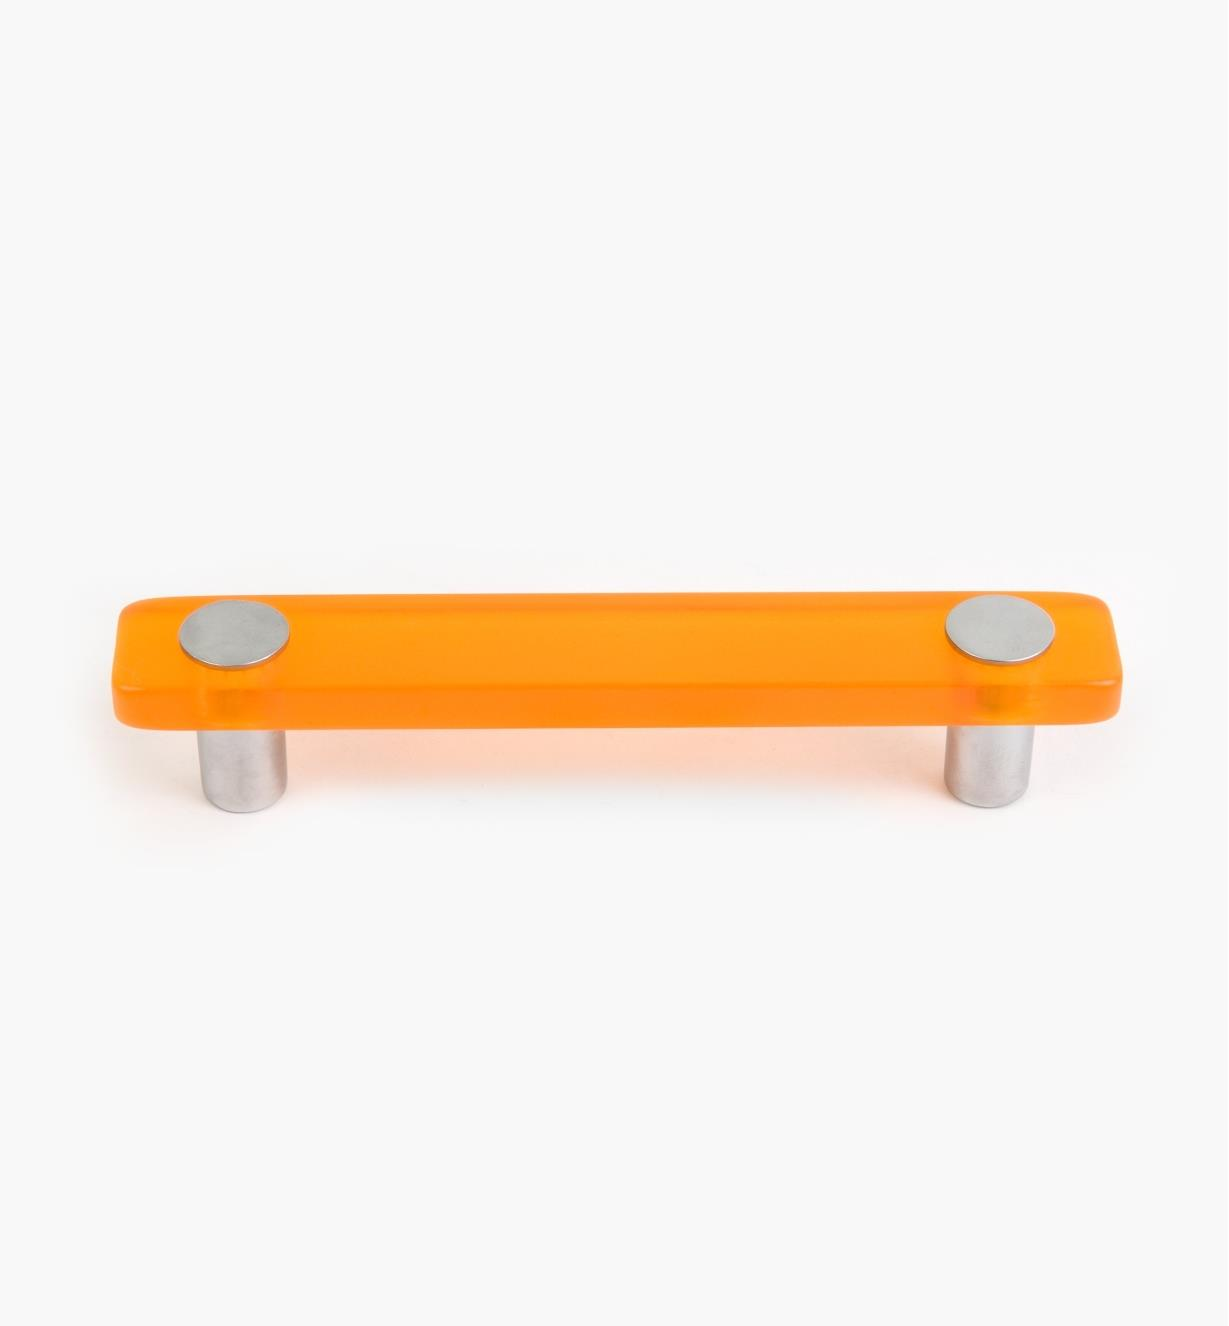 01W1172 - Malaga Hardware, Orange Handle